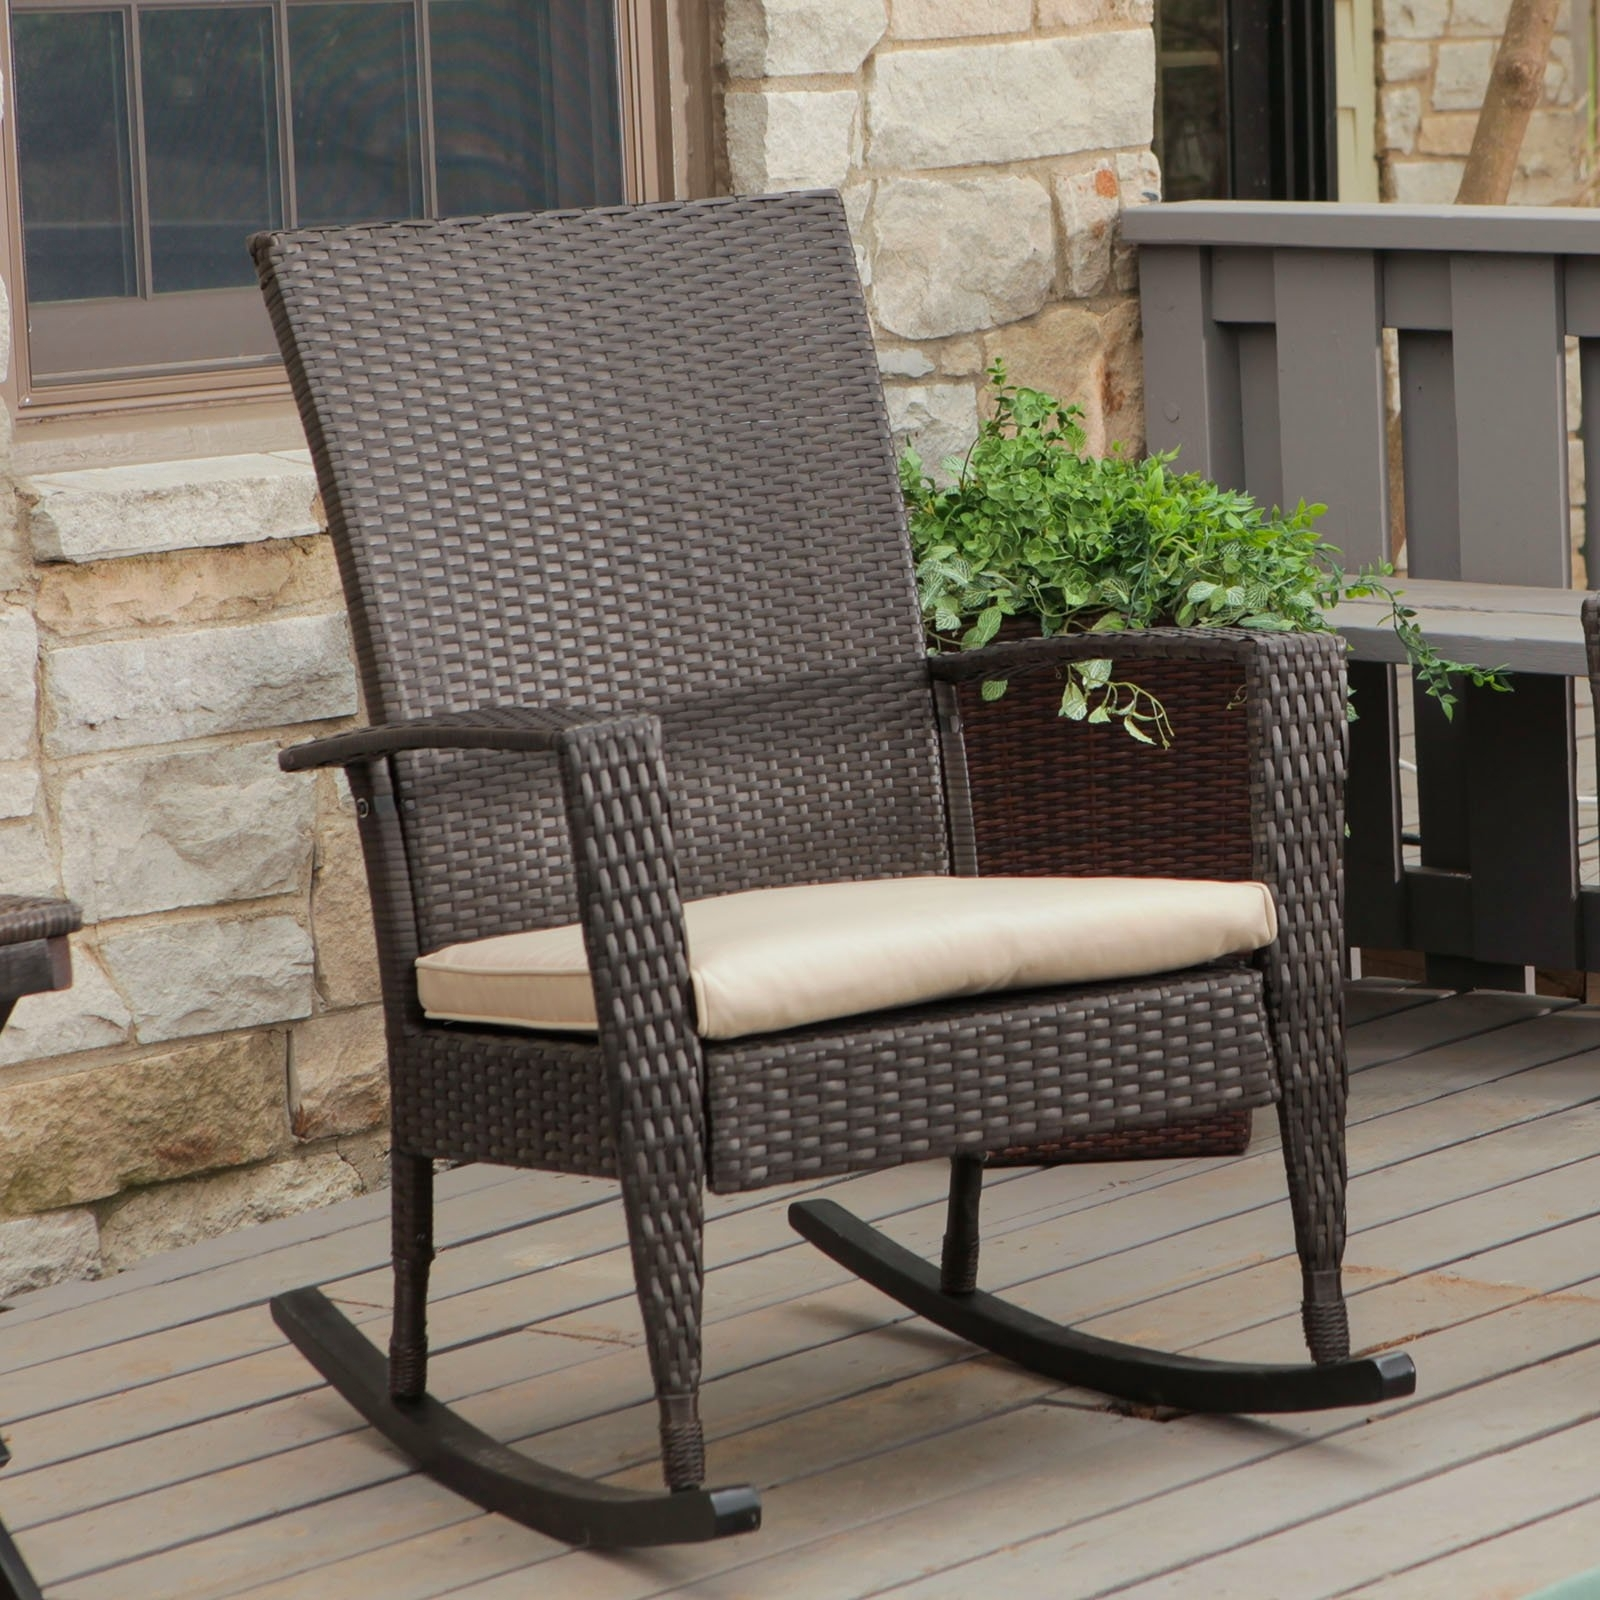 Decorating Modern Lawn Chairs Modern Balcony Furniture Modern Patio Throughout Outdoor Patio Rocking Chairs (#3 of 15)